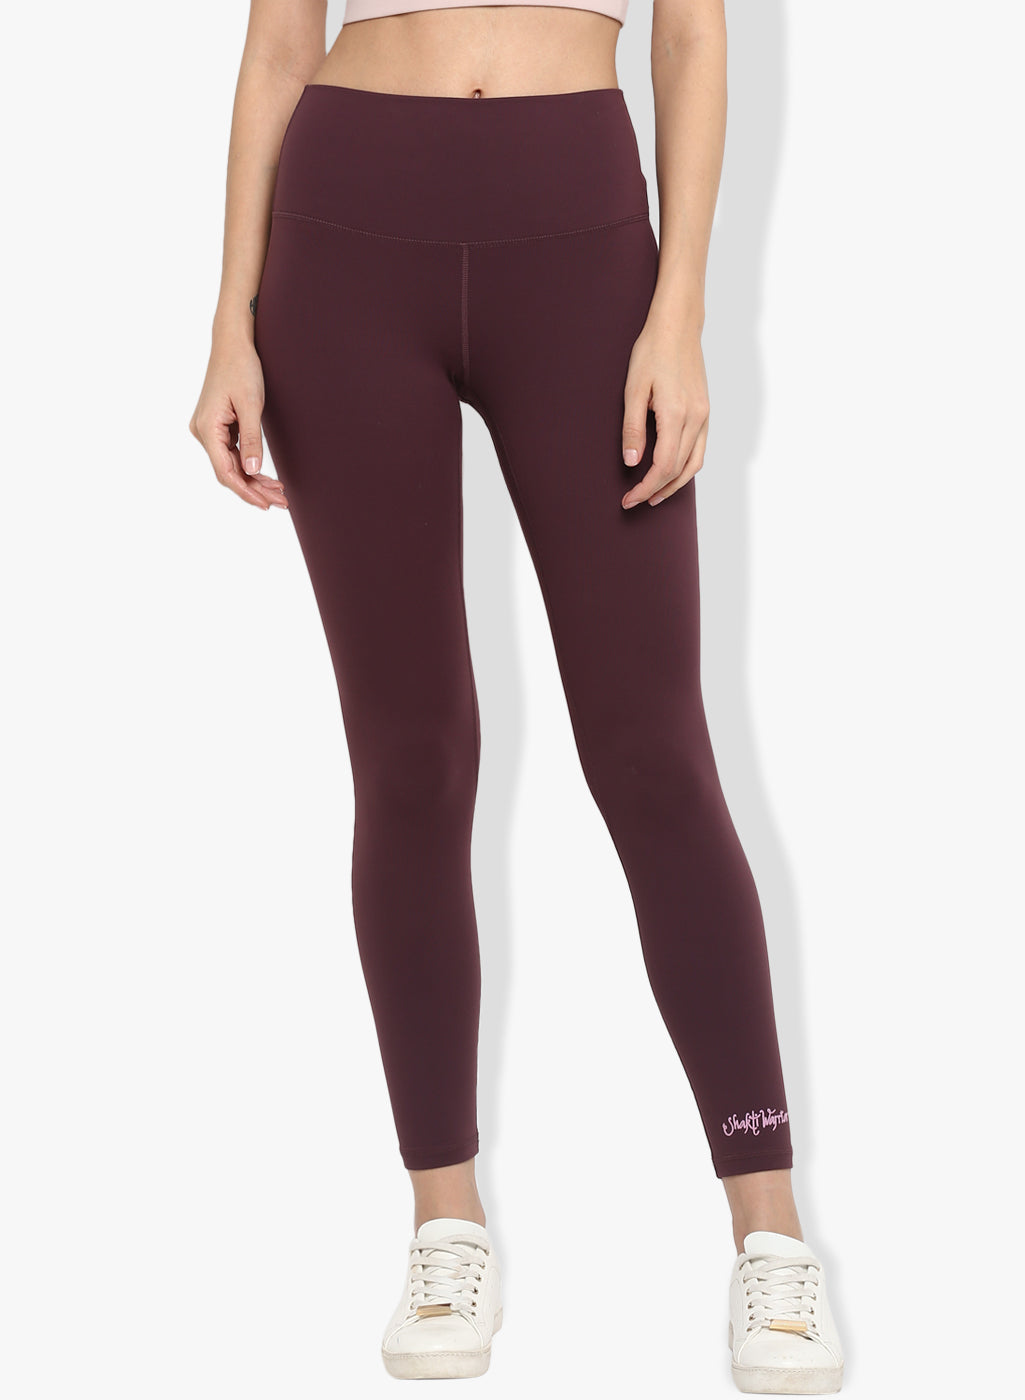 Shakti Warrior Workout leggings yoga pants burgandy